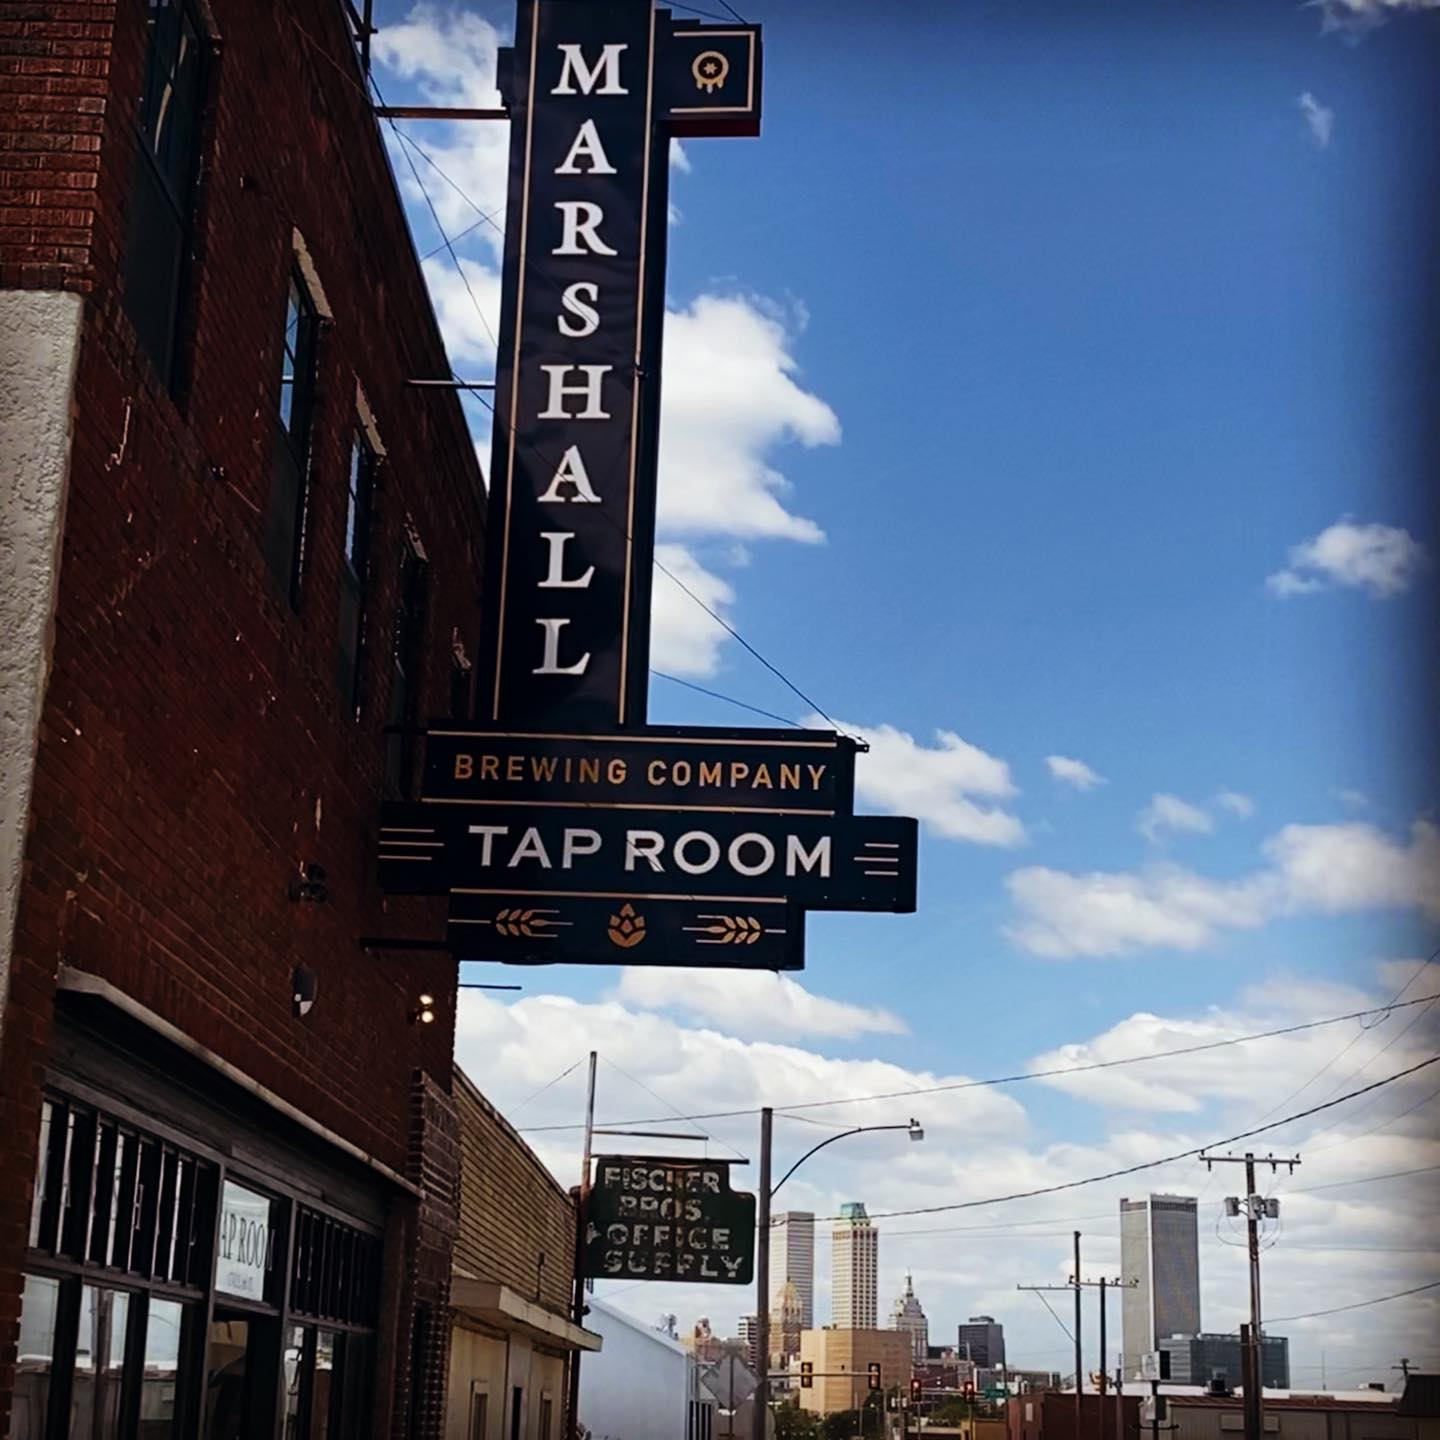 The Tap Room Sign and Tulsa Skyline